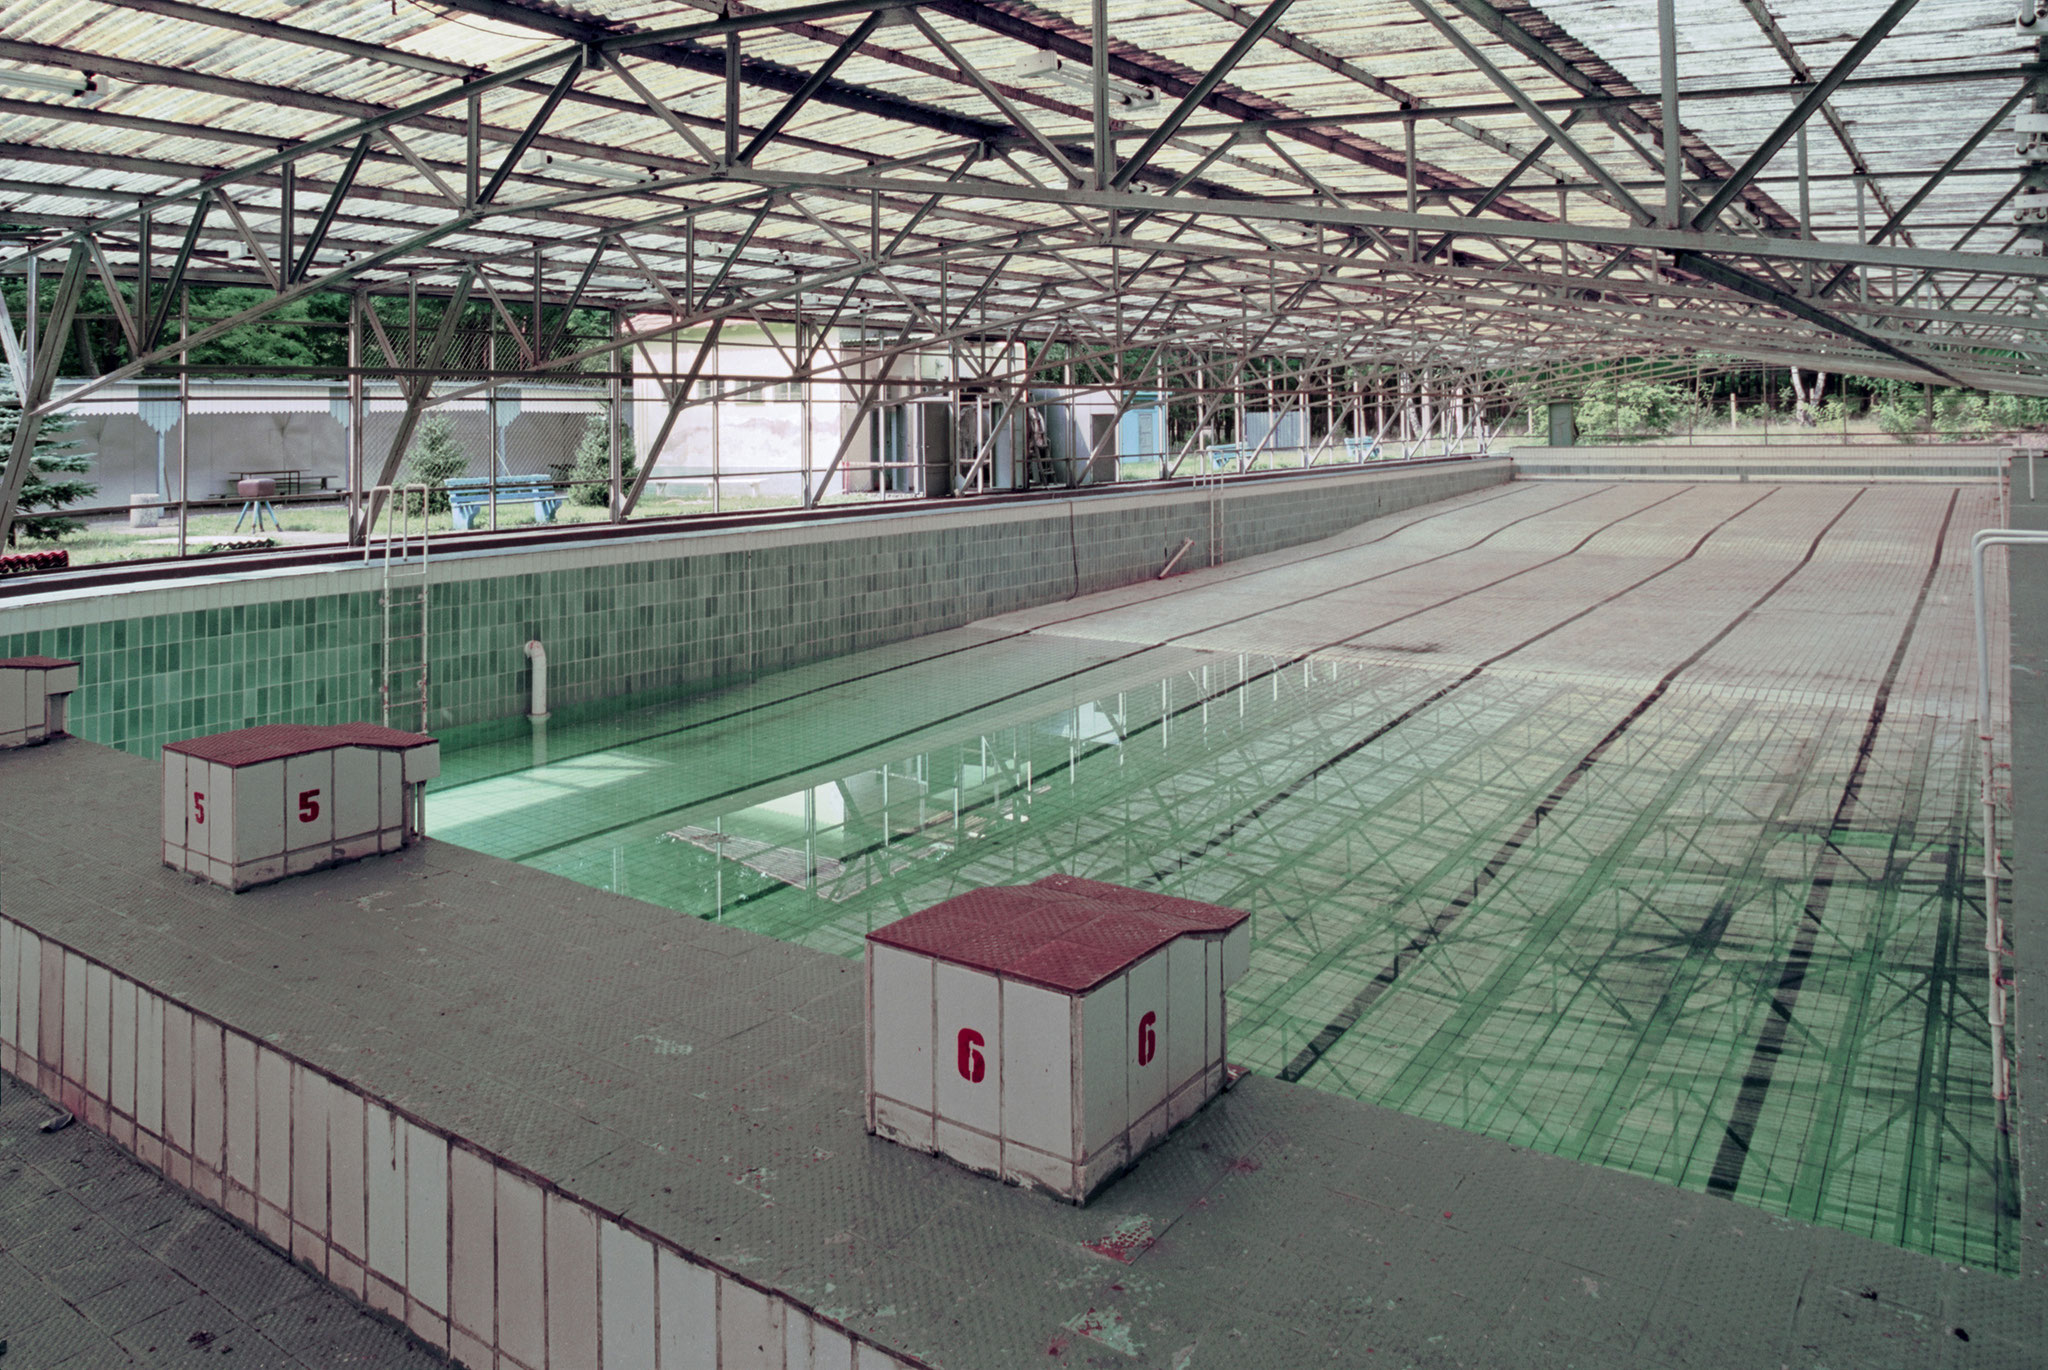 Open air swimming pool, circa 1994 (© Steinberg, Detlev)